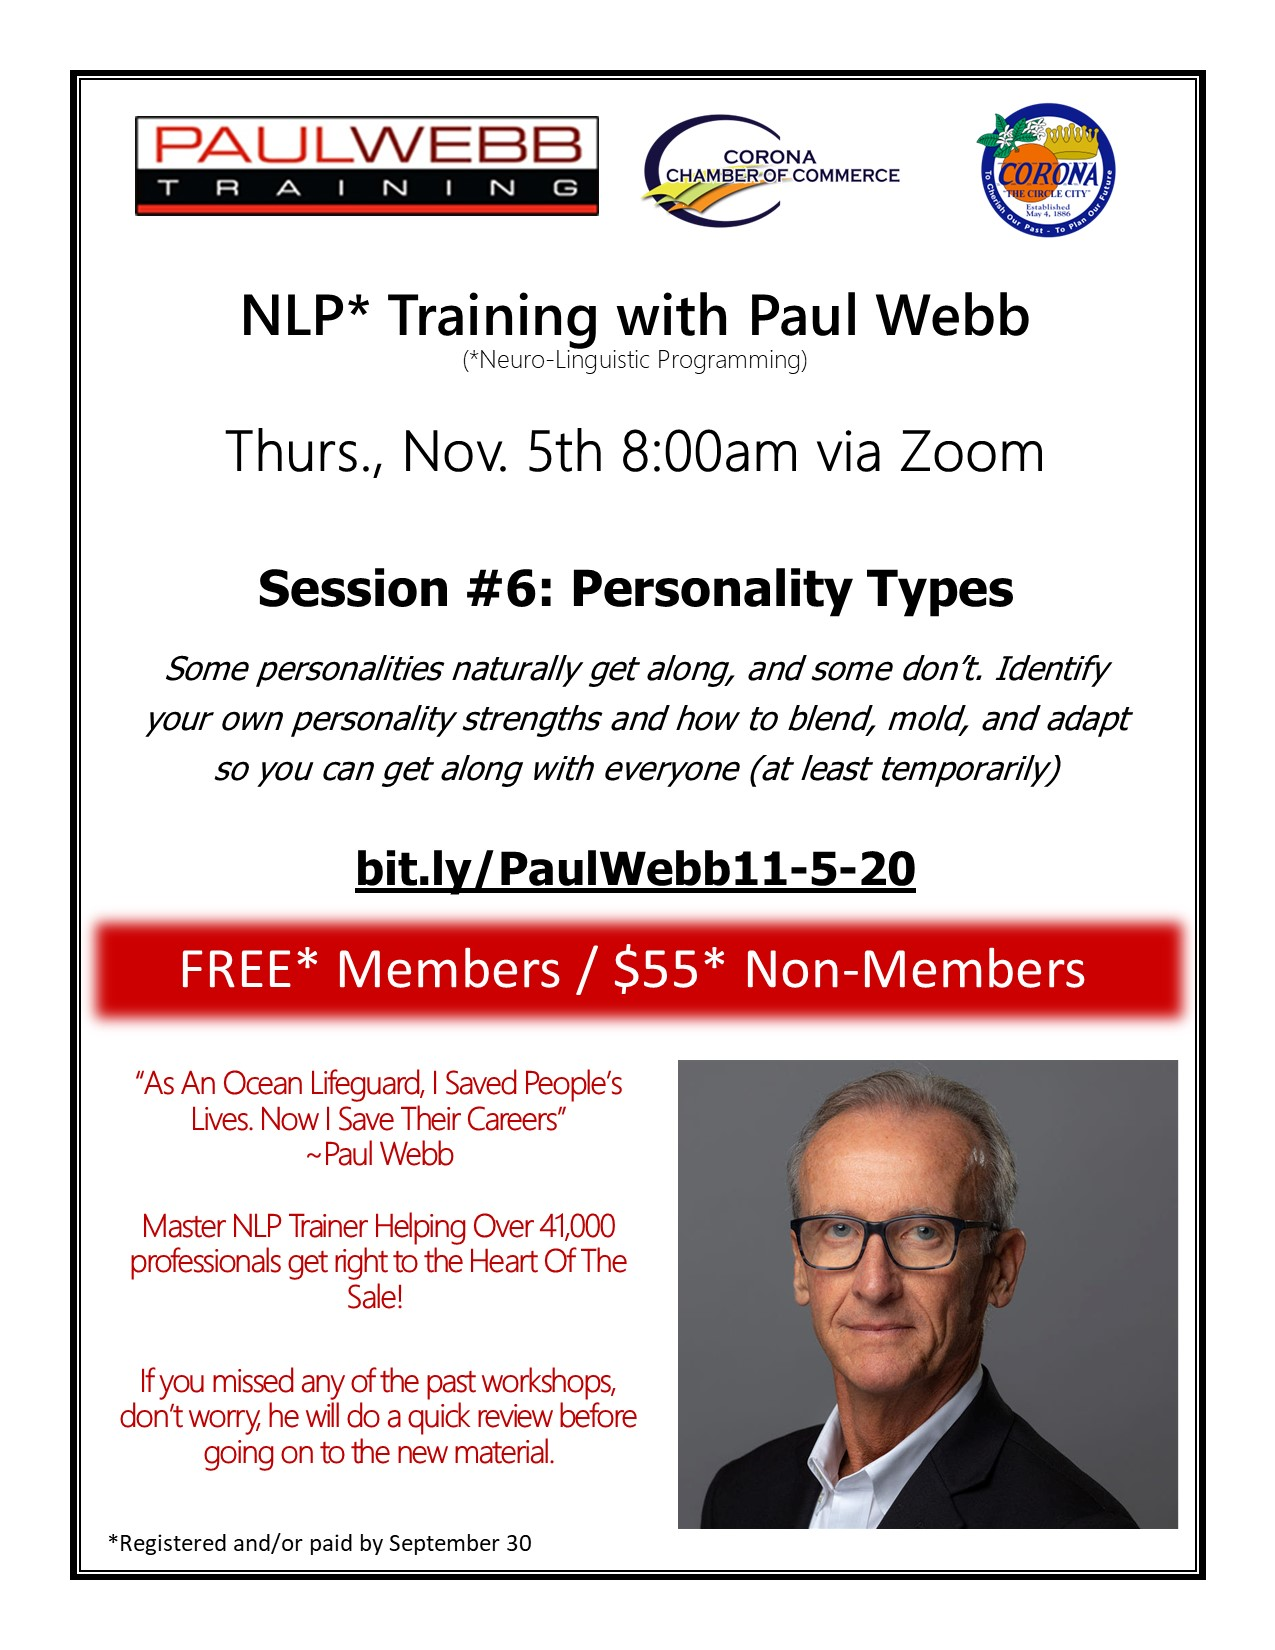 NLP Personality Types Workshop 11-5-20